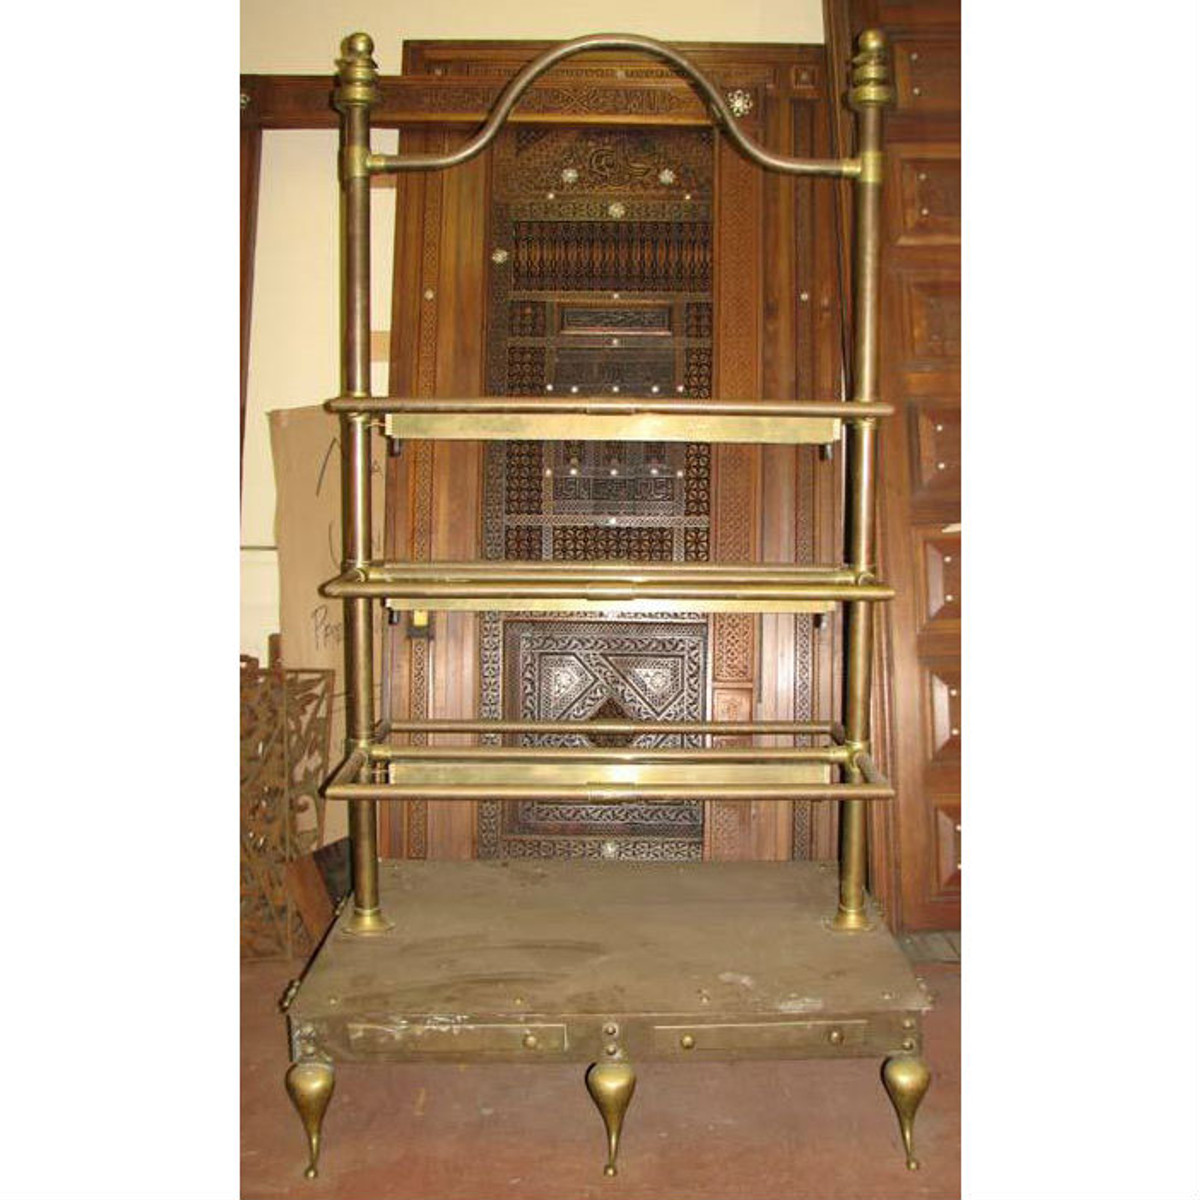 502638 - Vintage Display Rack from the J.L. Hudson Store in Detroit